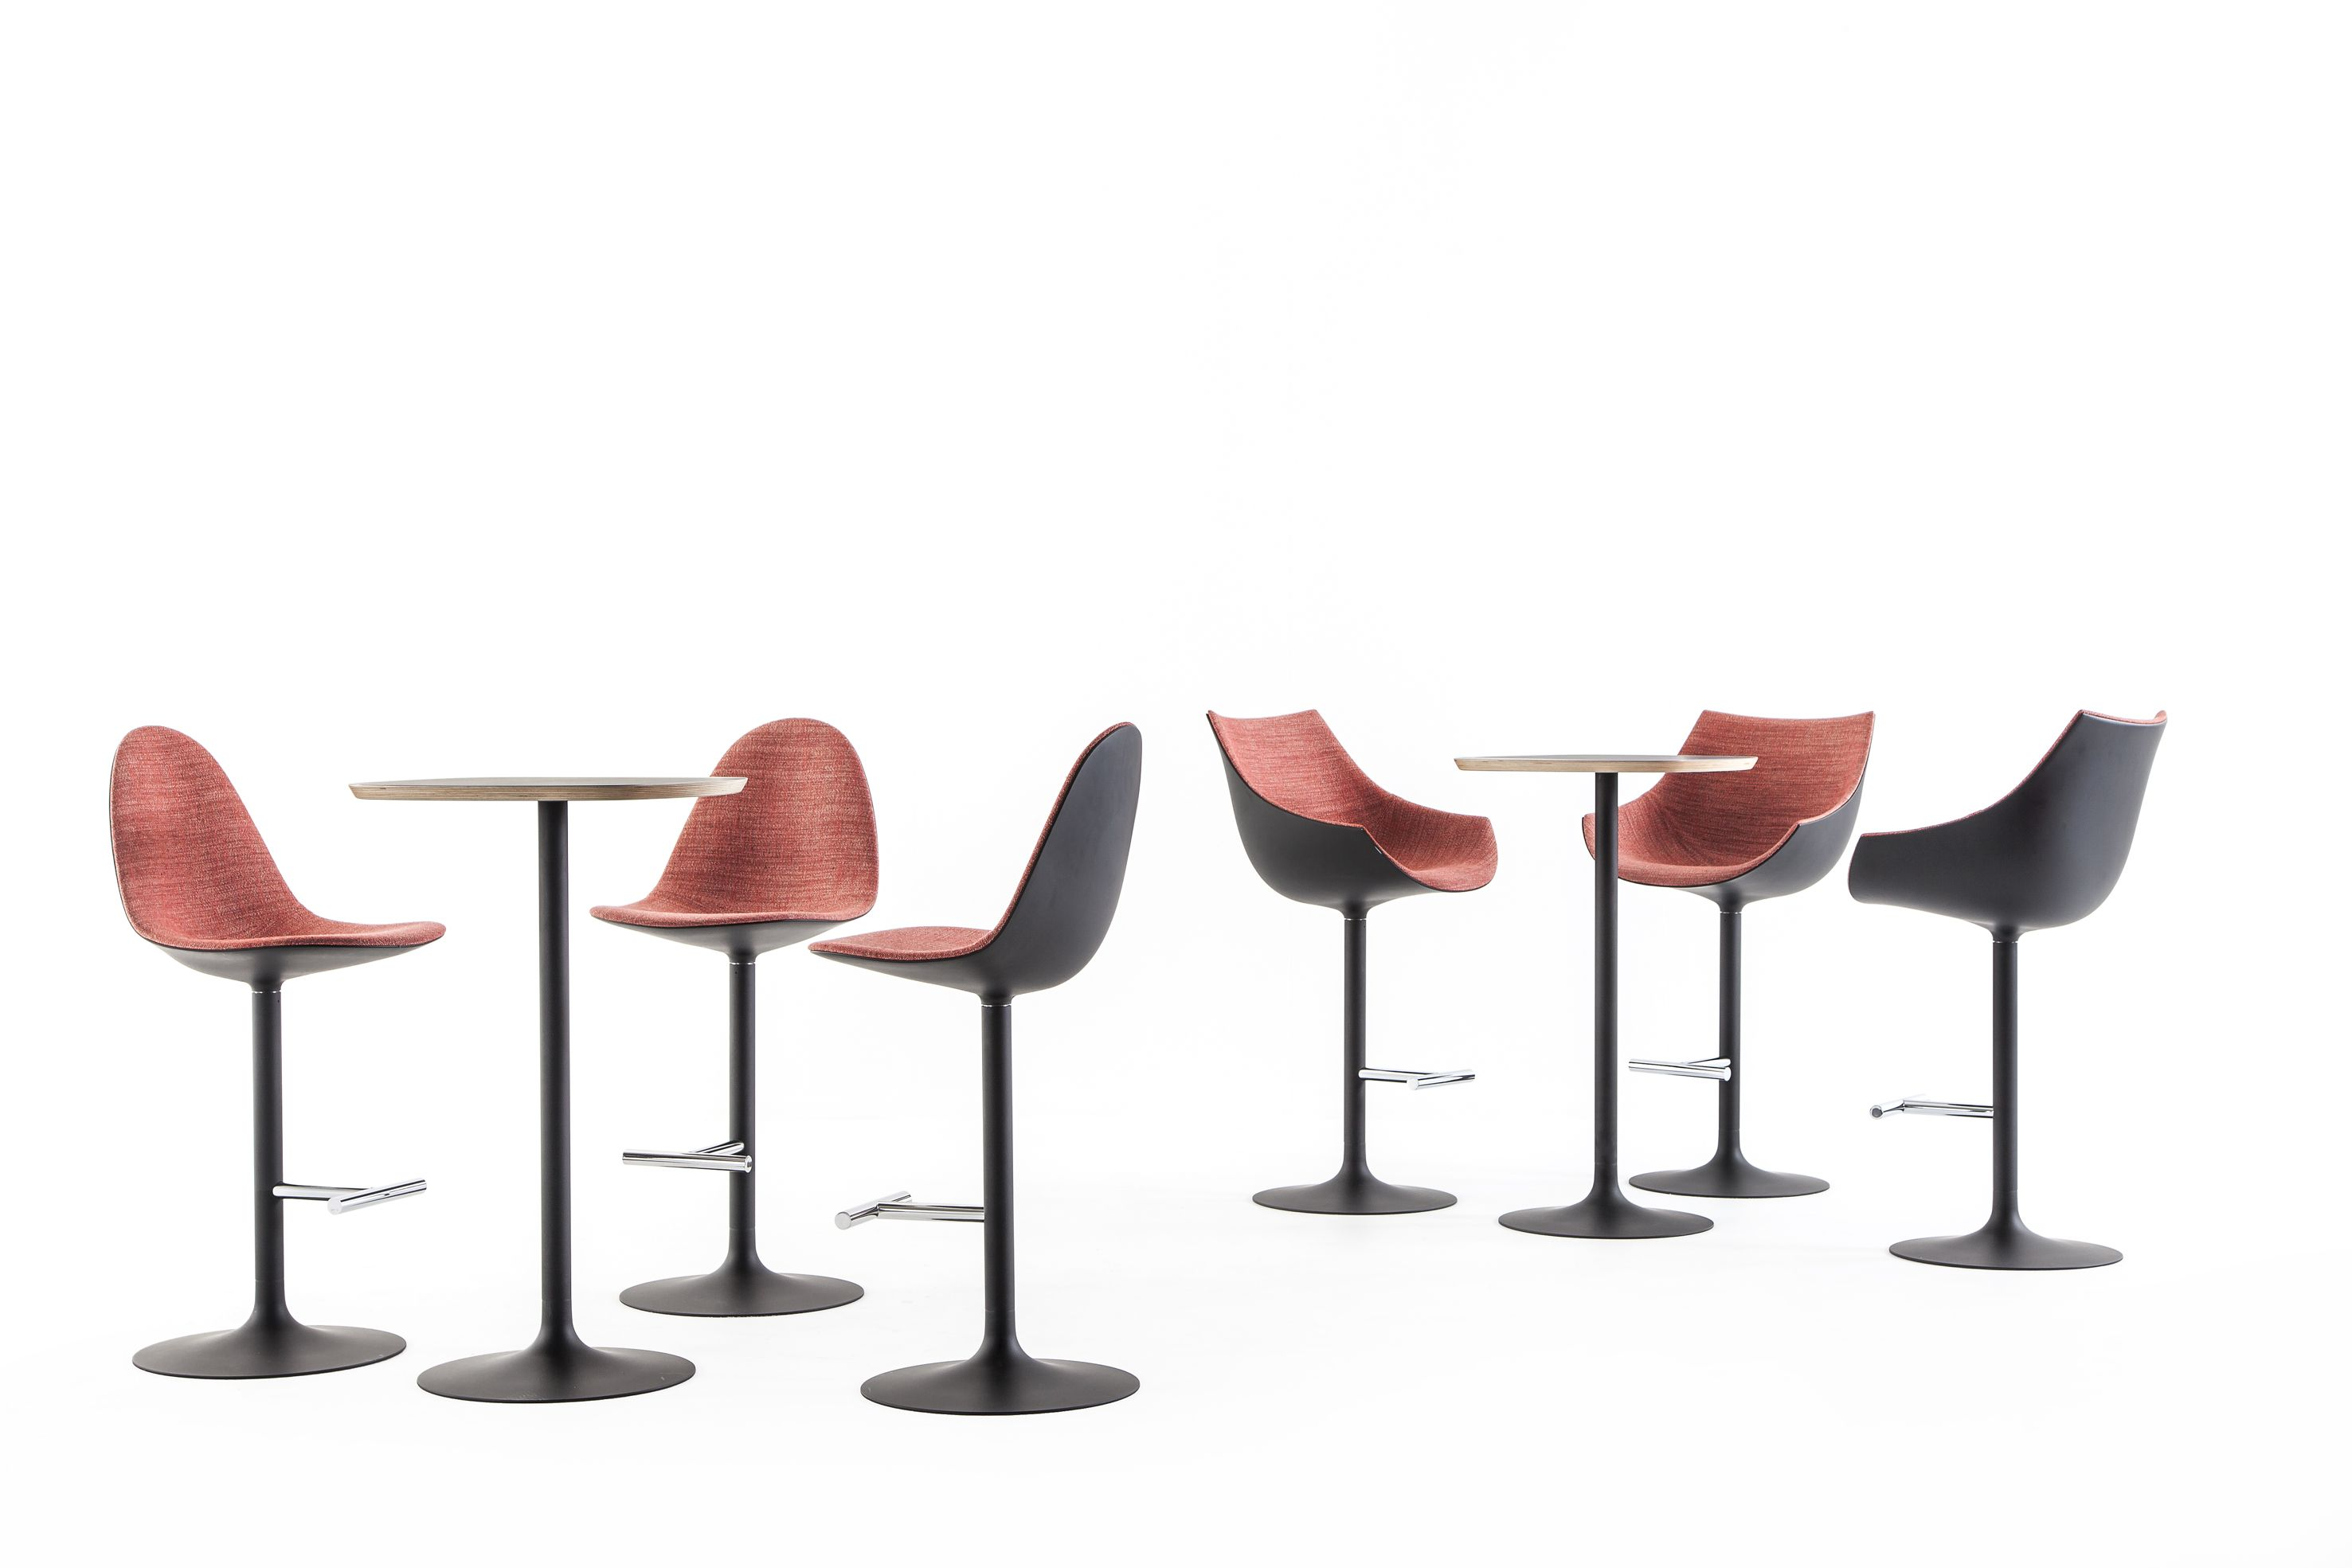 Design Stoelen Philippe Starck.Barstool Caprice And Passion By Philippe Starck For Cassina Stoel